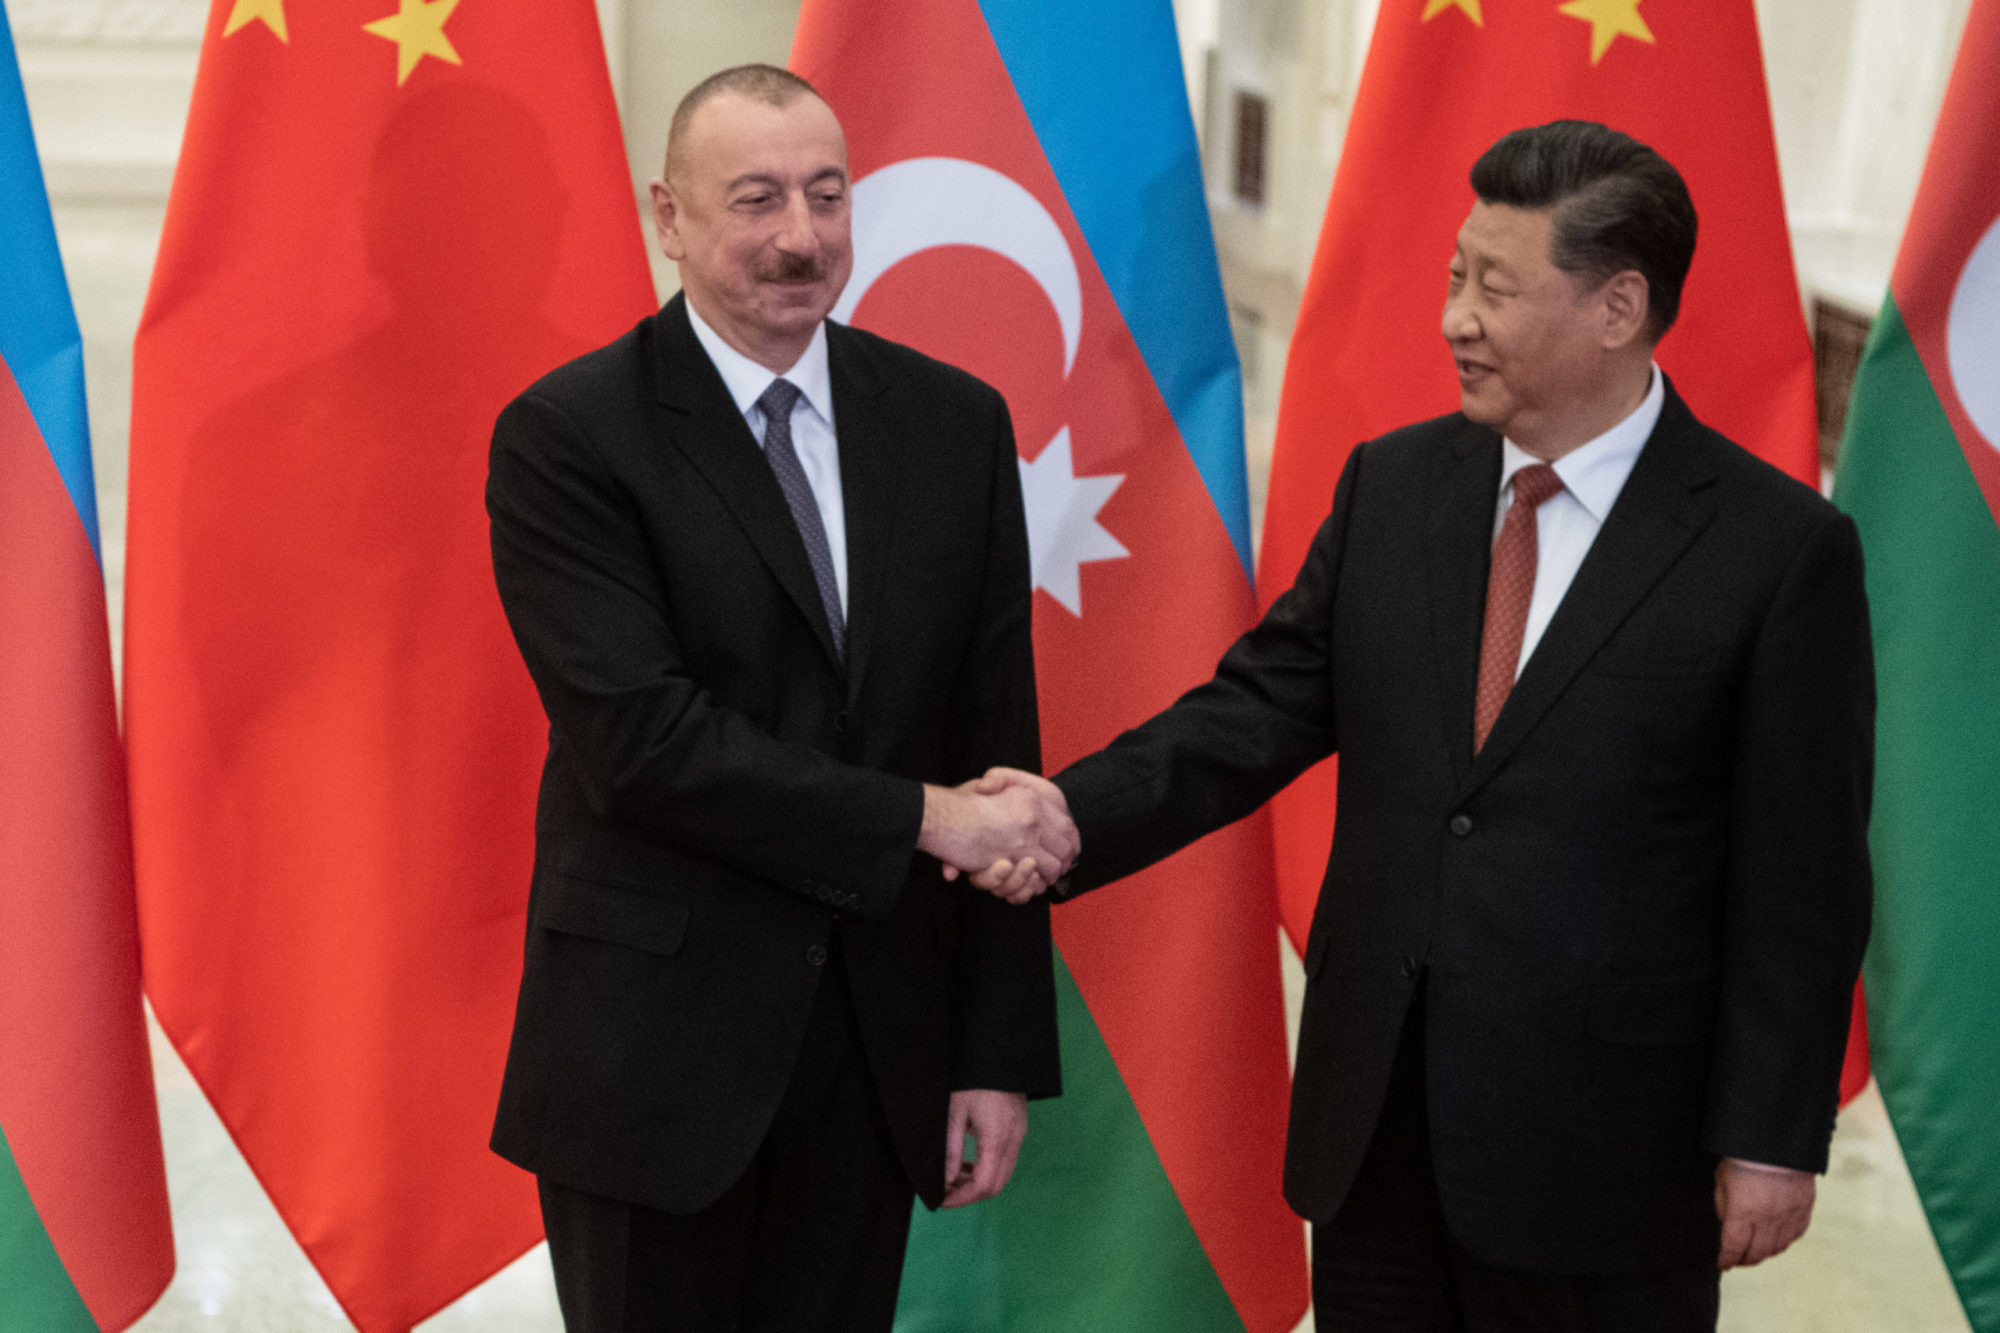 President Xi Jinping shakes hand with a top level Azerbaijan official.